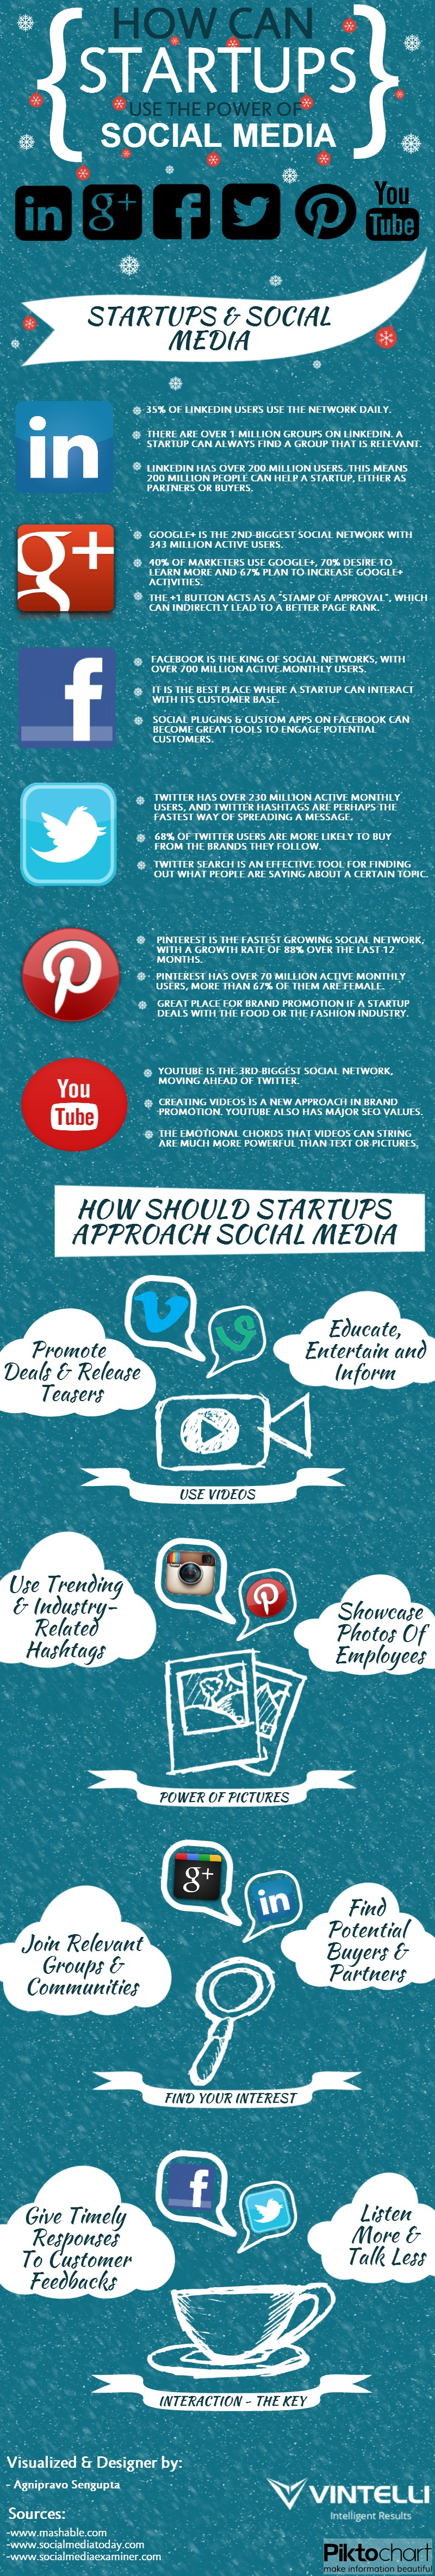 How Can Startups Use The Power Of Social Media